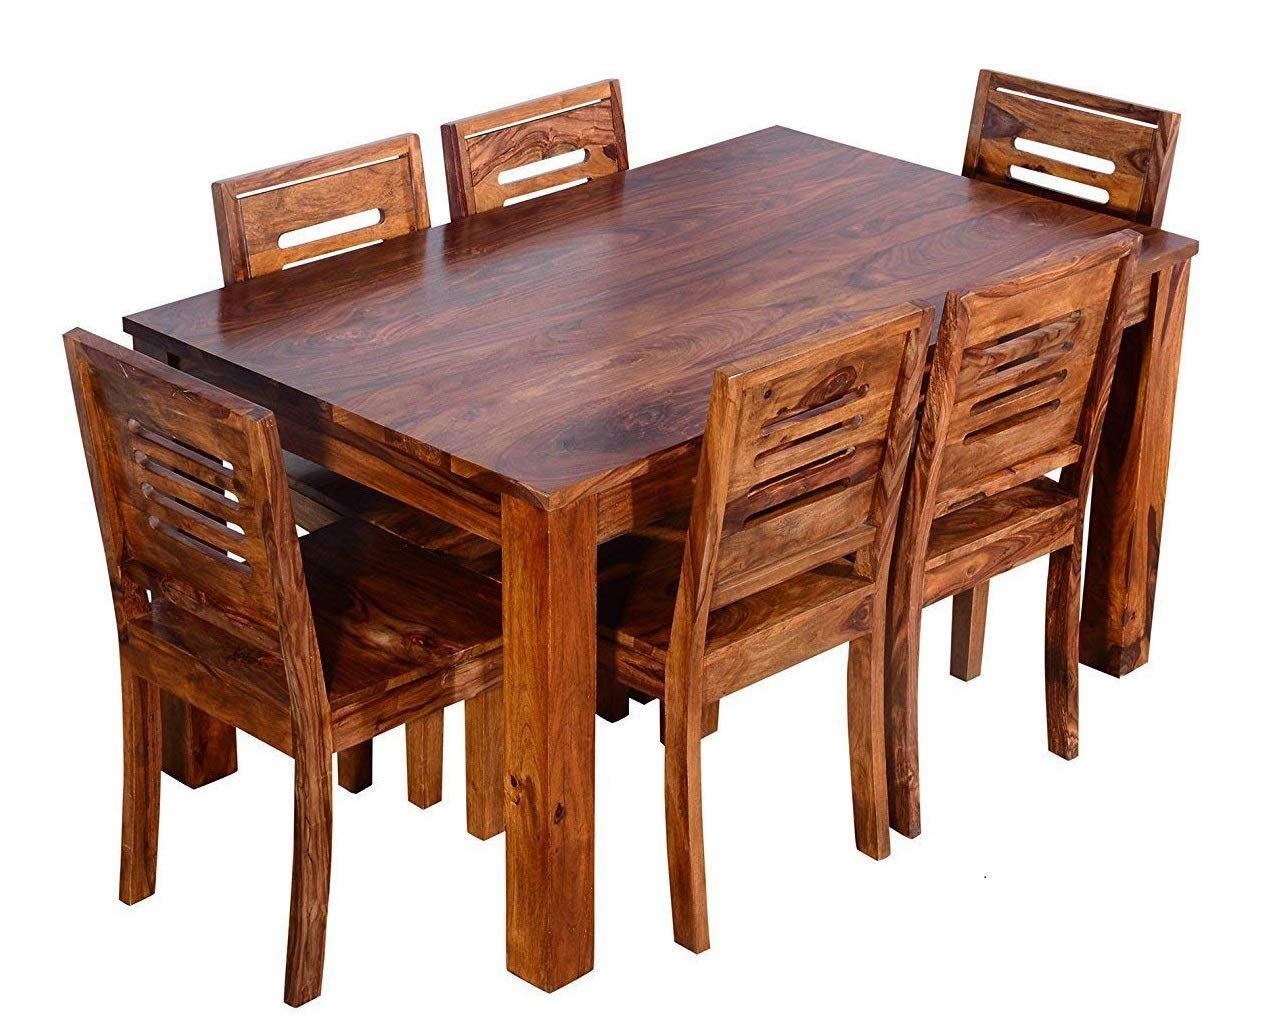 Mahimart And Handicrafts Furniture World Sheesham Wood Wooden Dining Table With 6 Chairs Home And Living Room 6 Seater 1 Teak Finish Amazon In Home Kitchen